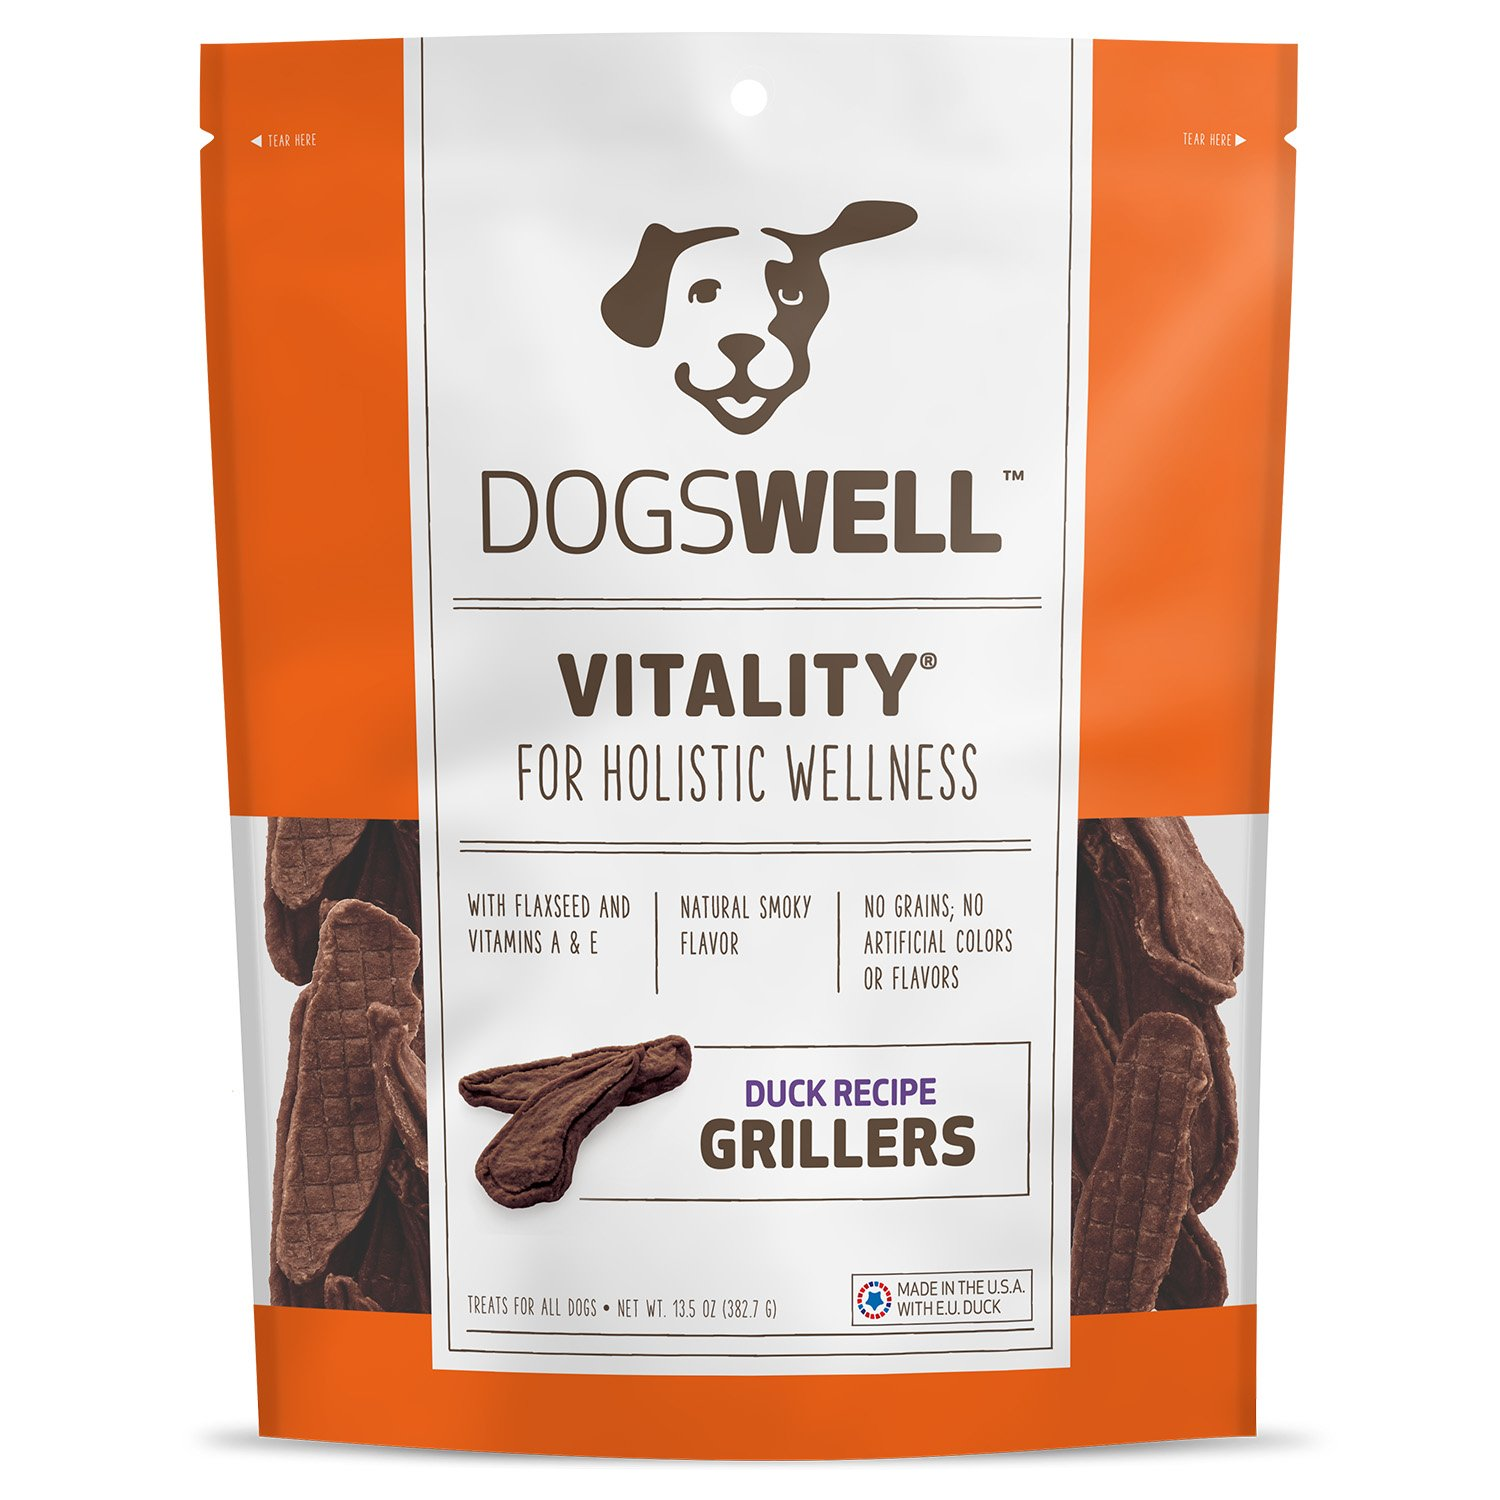 Dogswell Vitality Grillers Duck Tenders Dog Treats